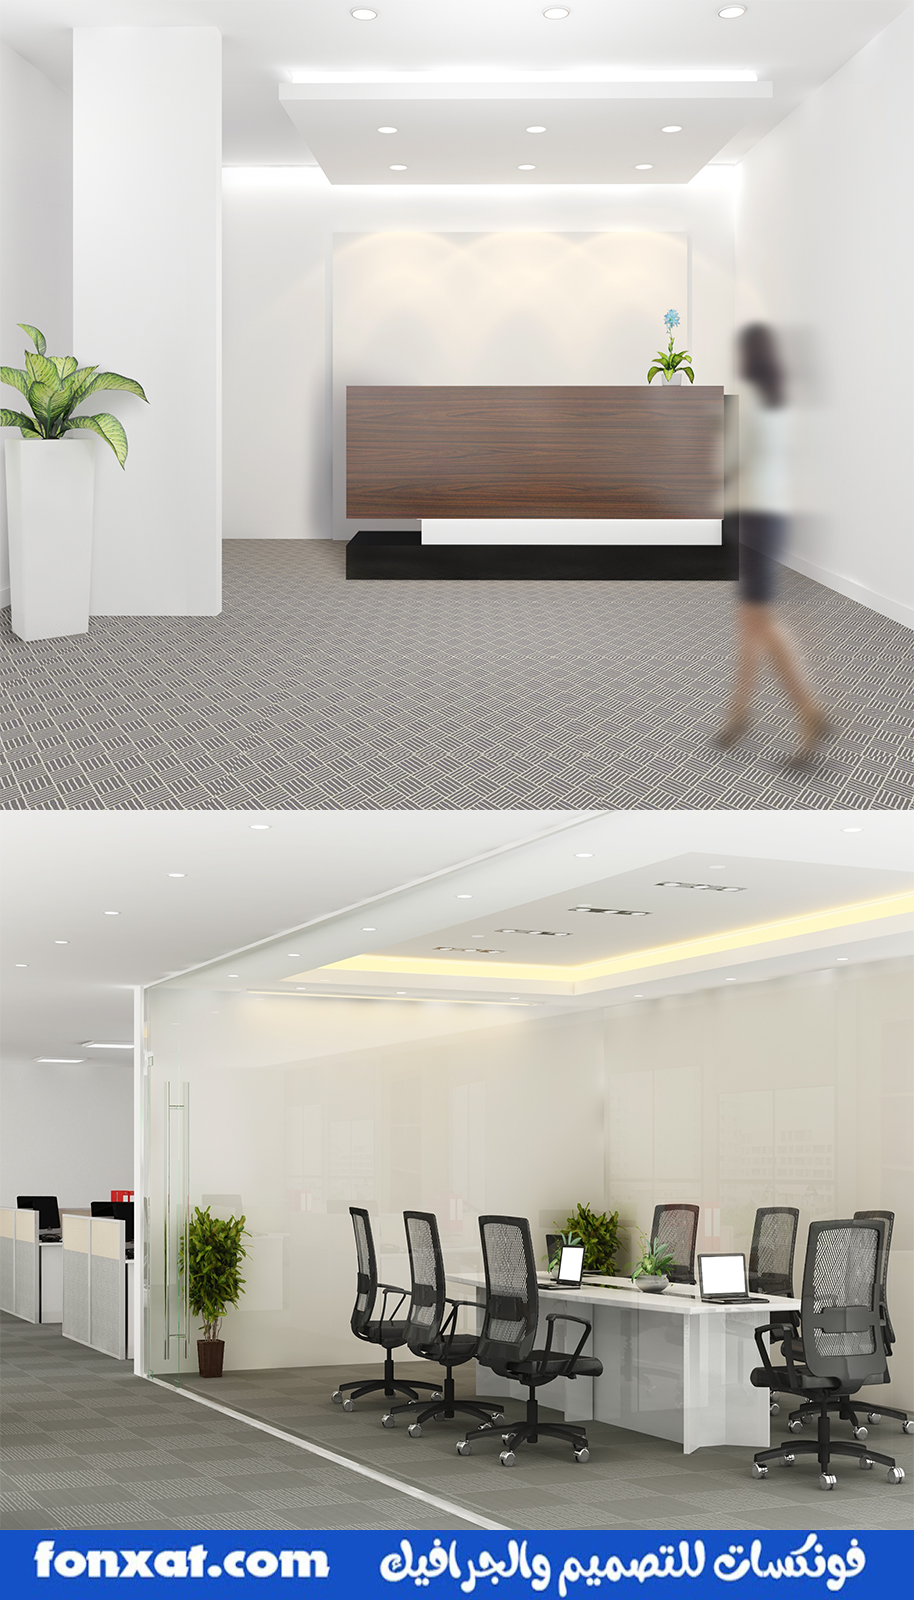 Mock-up meeting rooms to display corporate logo on the wall